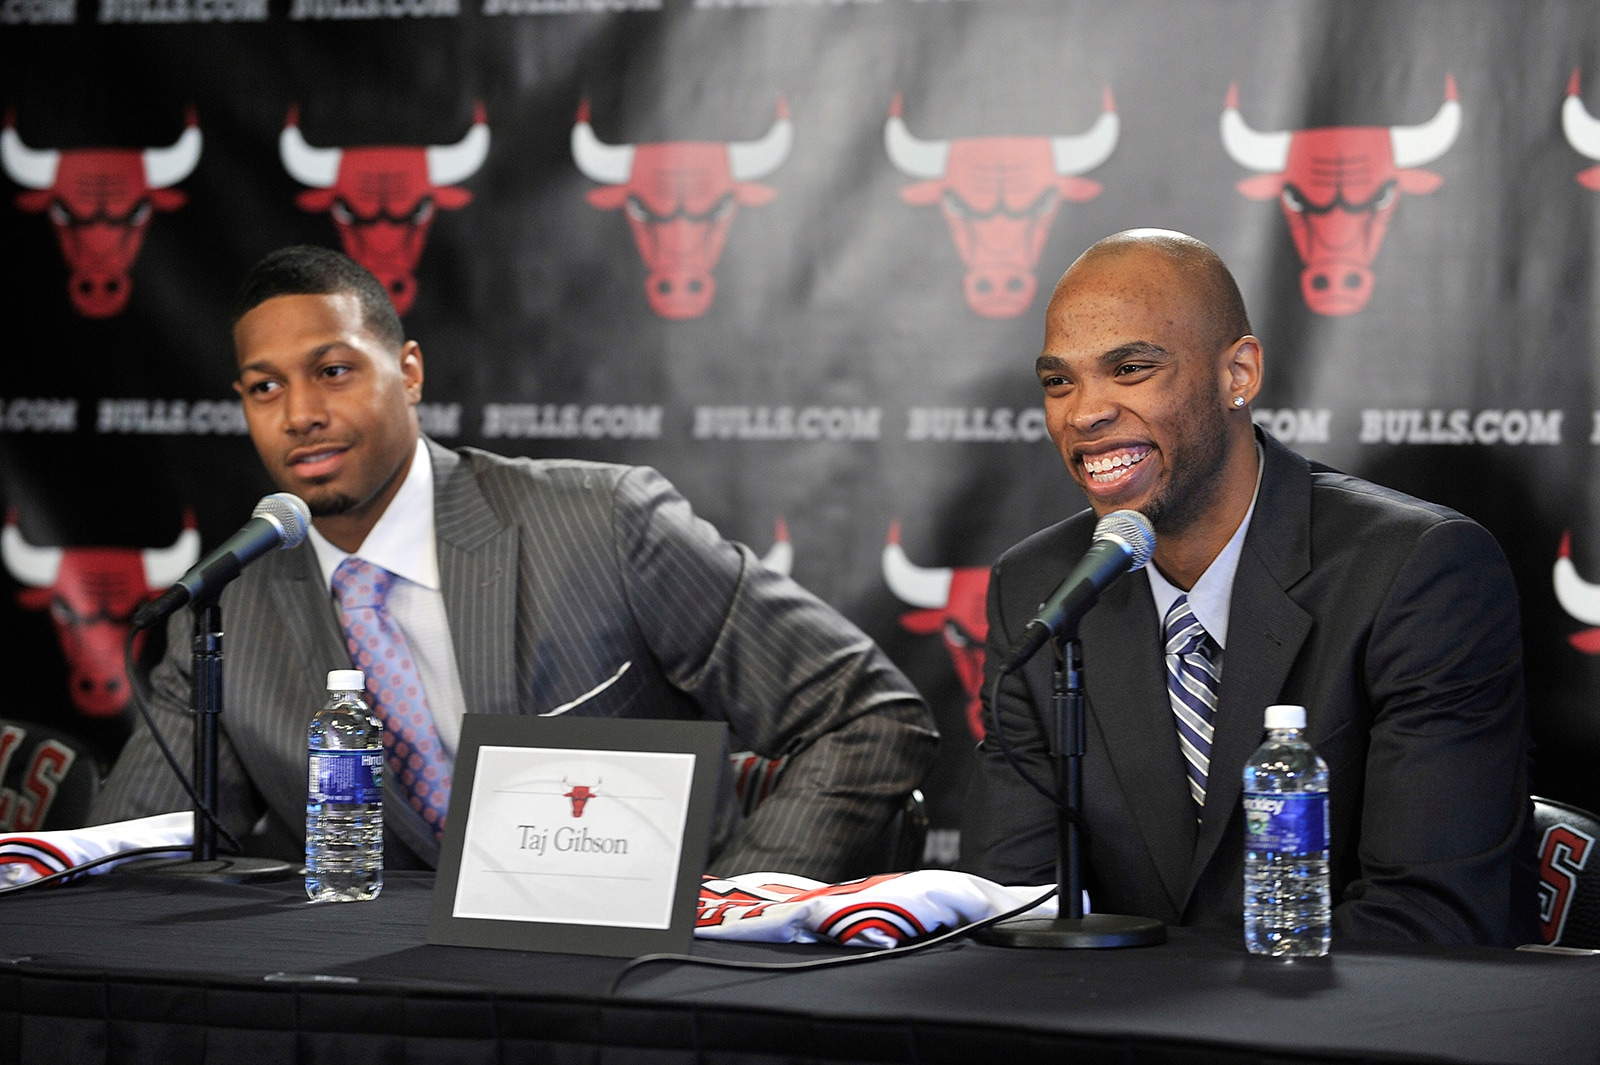 Taj Gibson talks to the media after being drafted by the Bulls